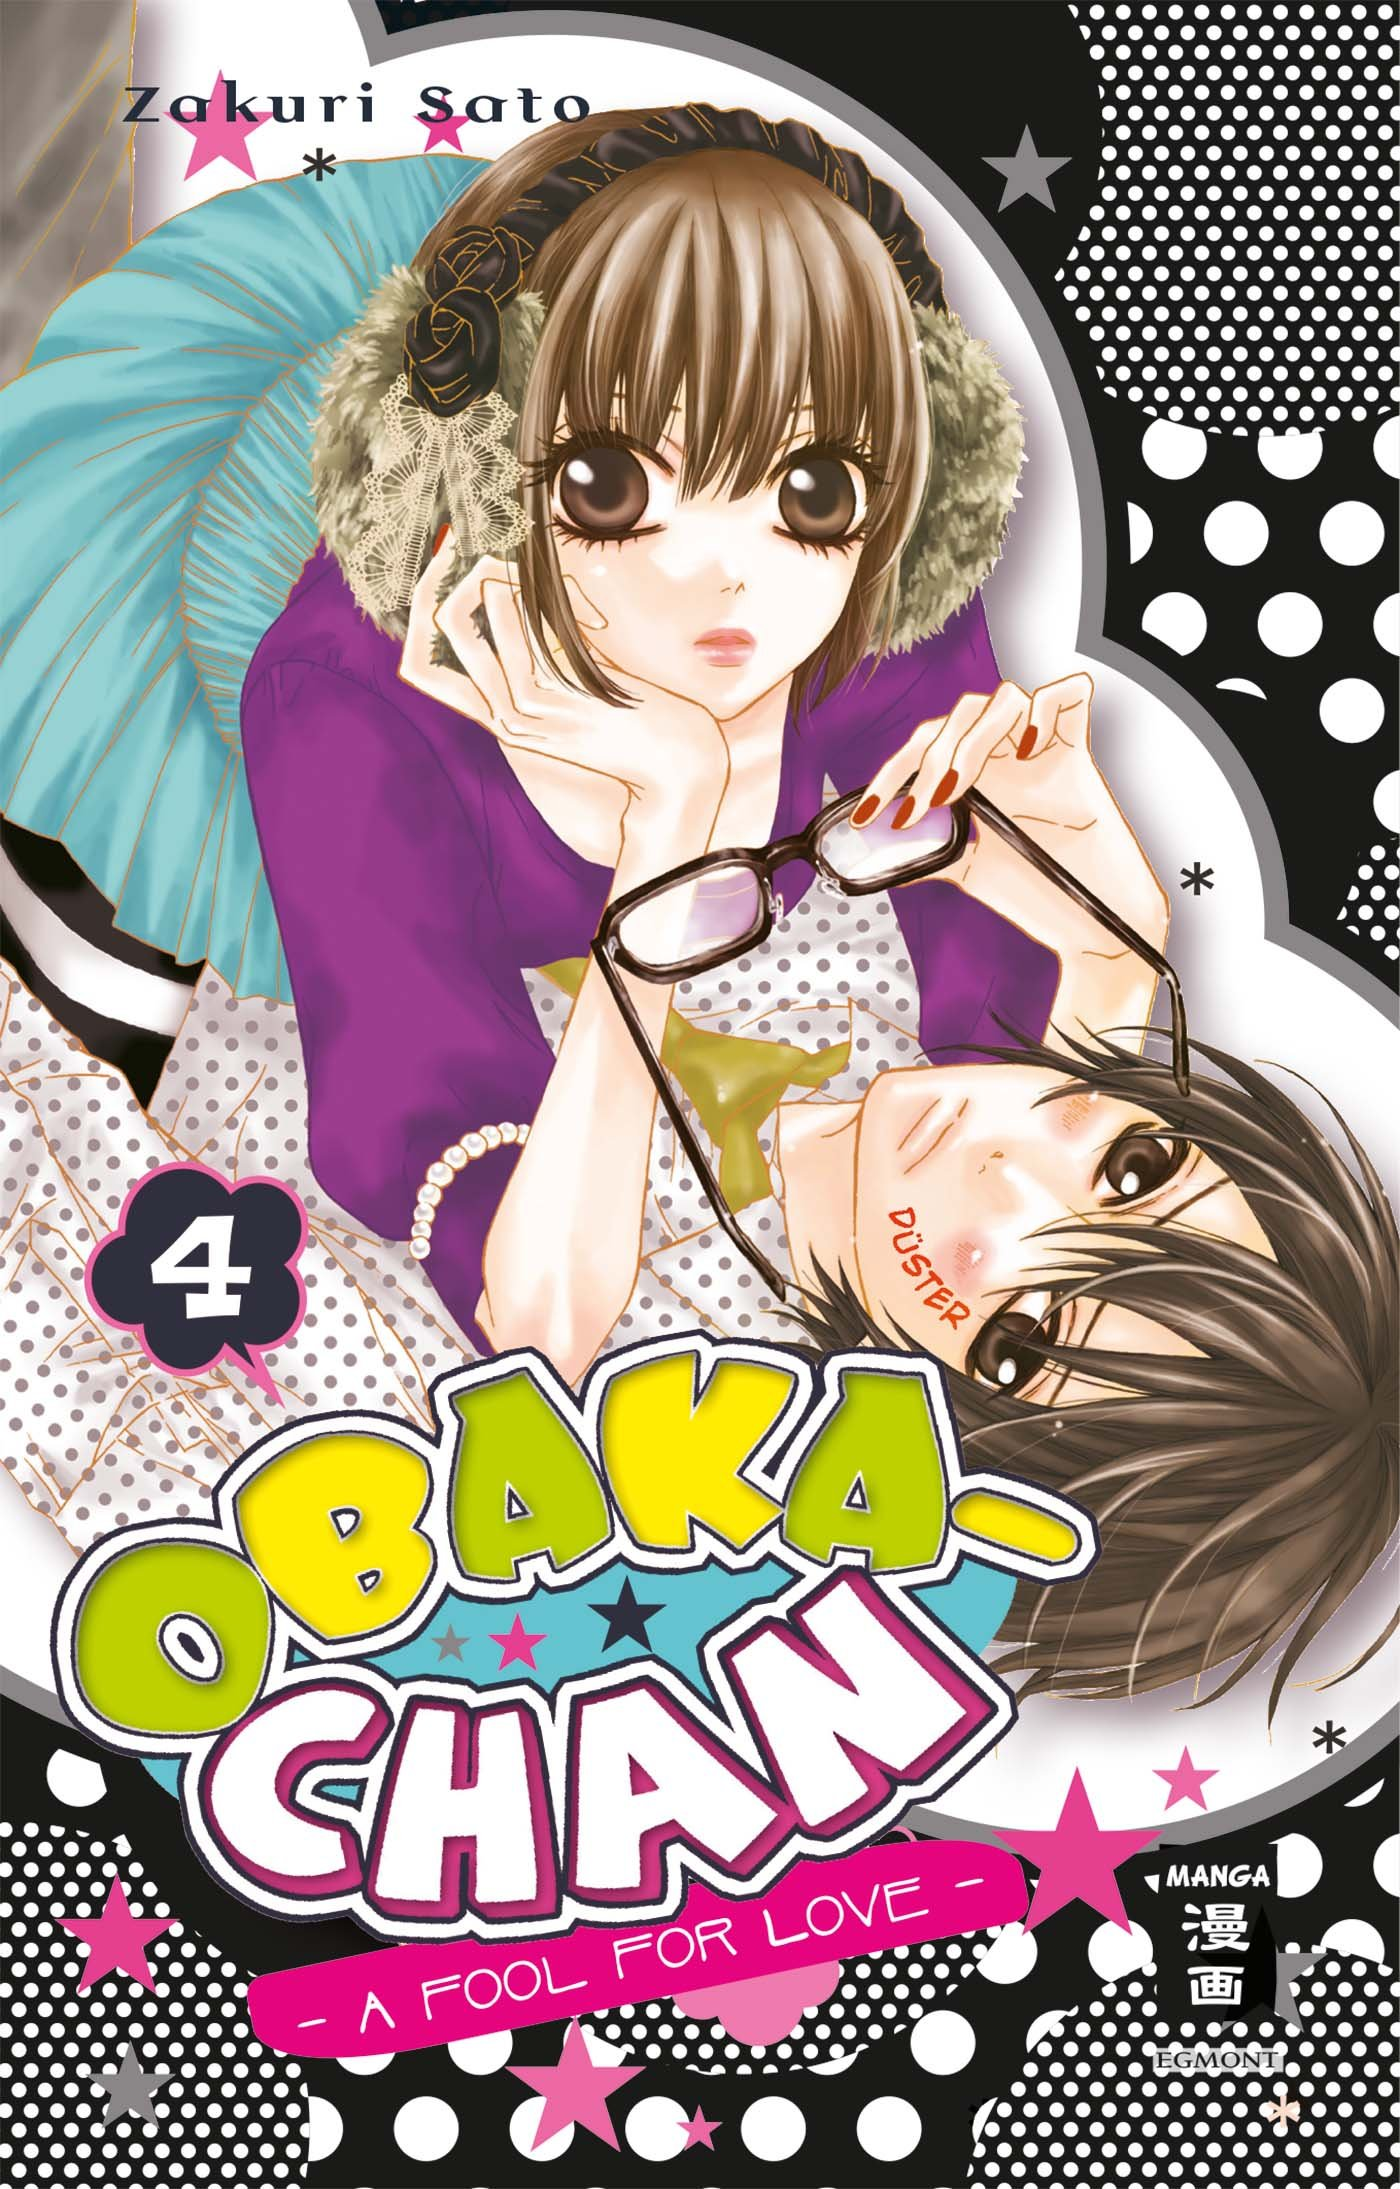 Obaka-chan - A fool for Love, Band 4